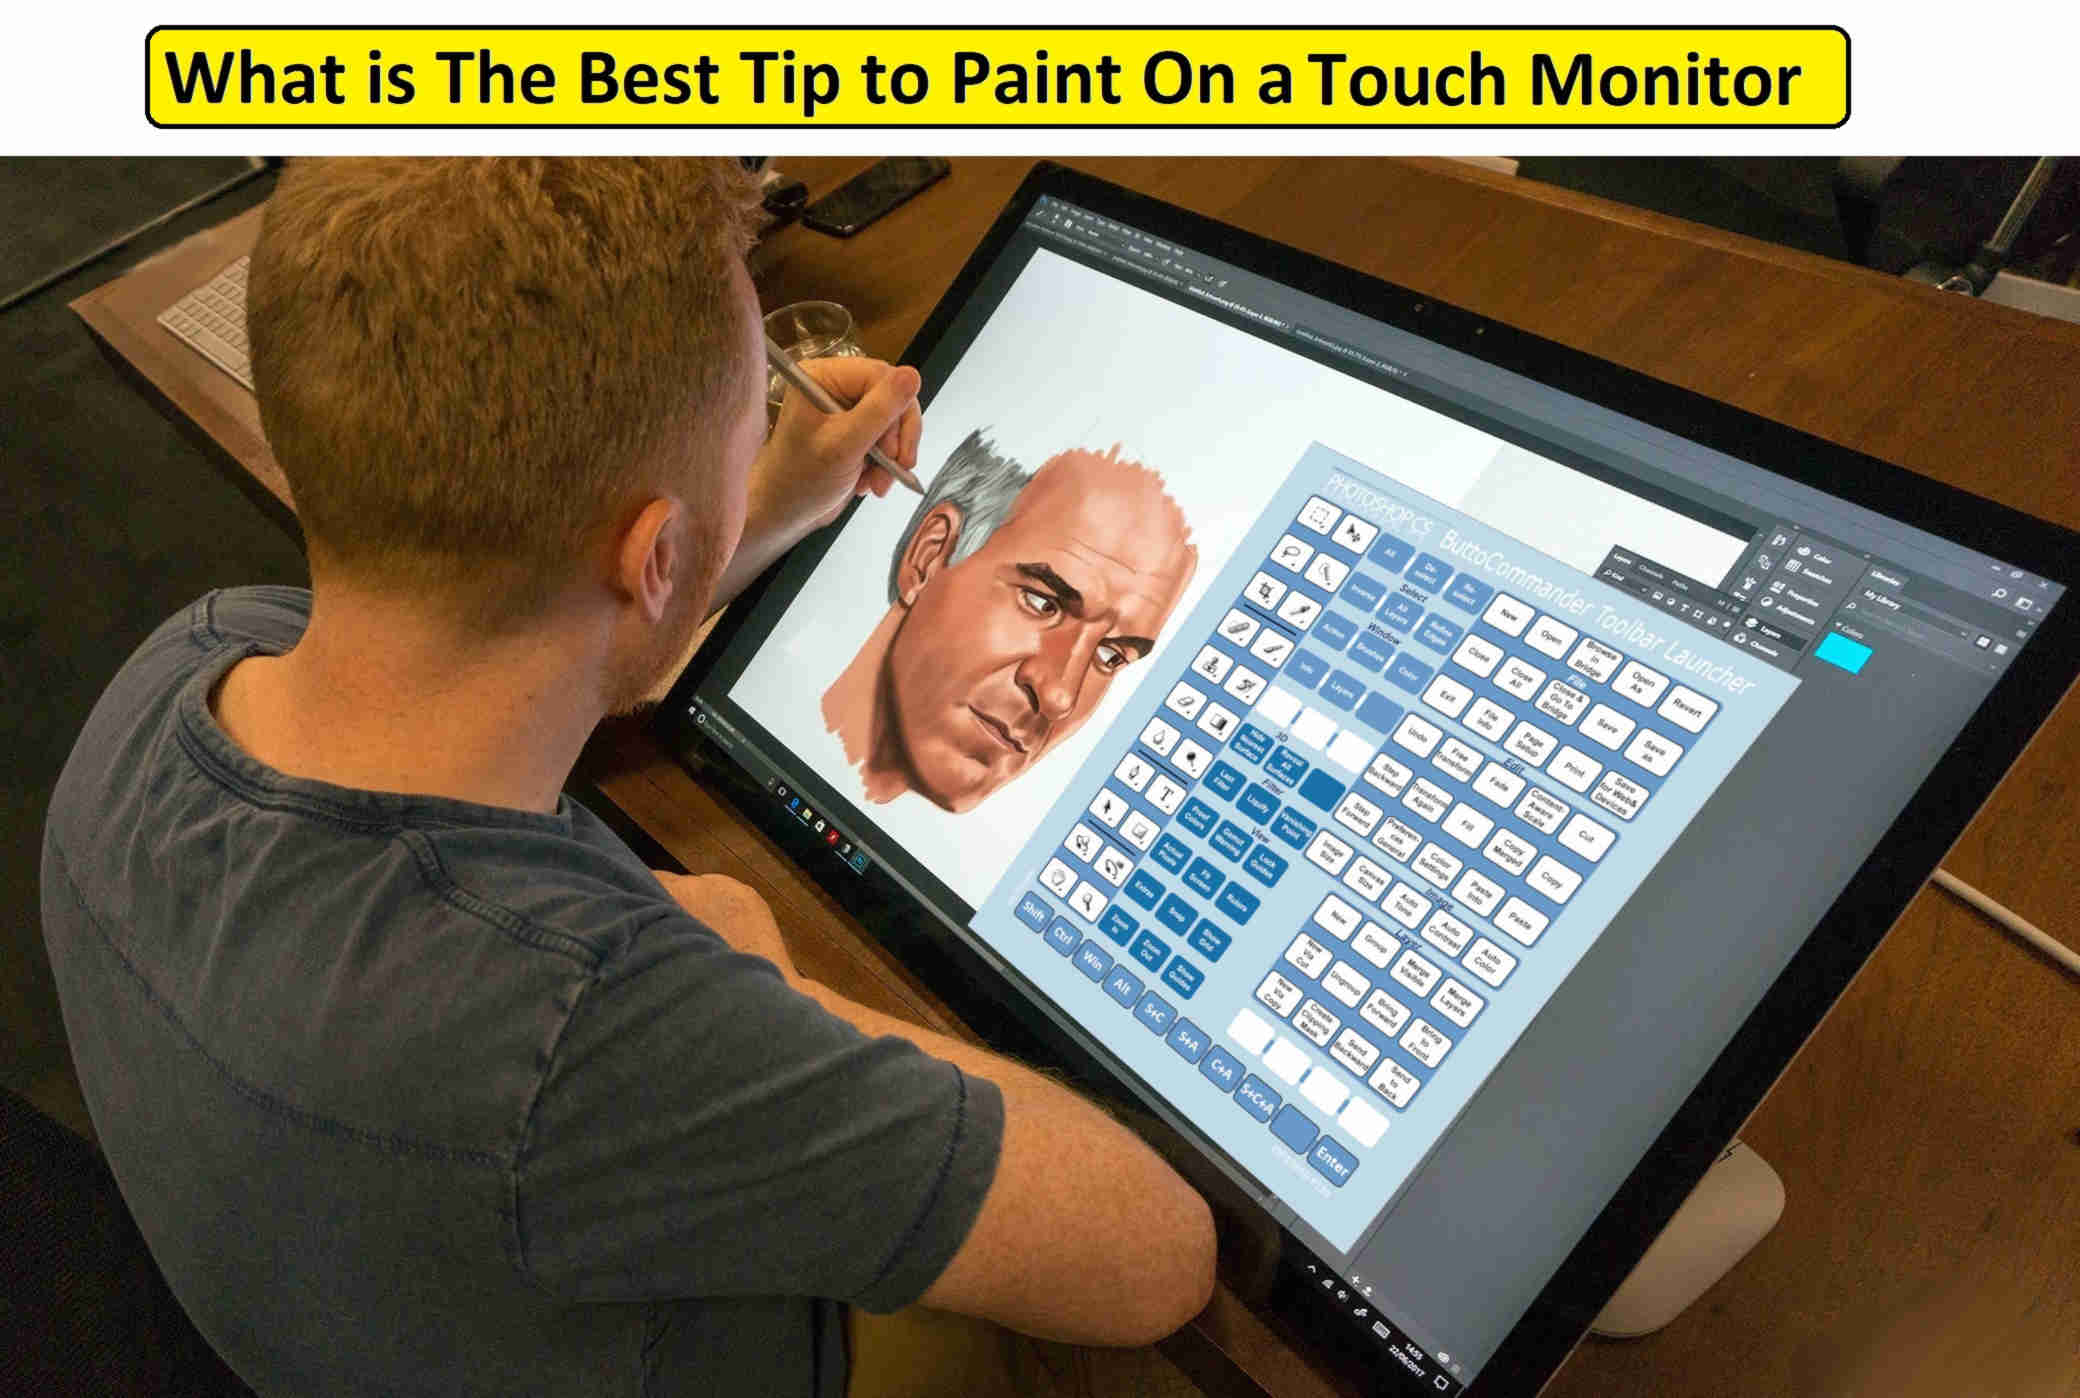 photoshop with touch screen monitor